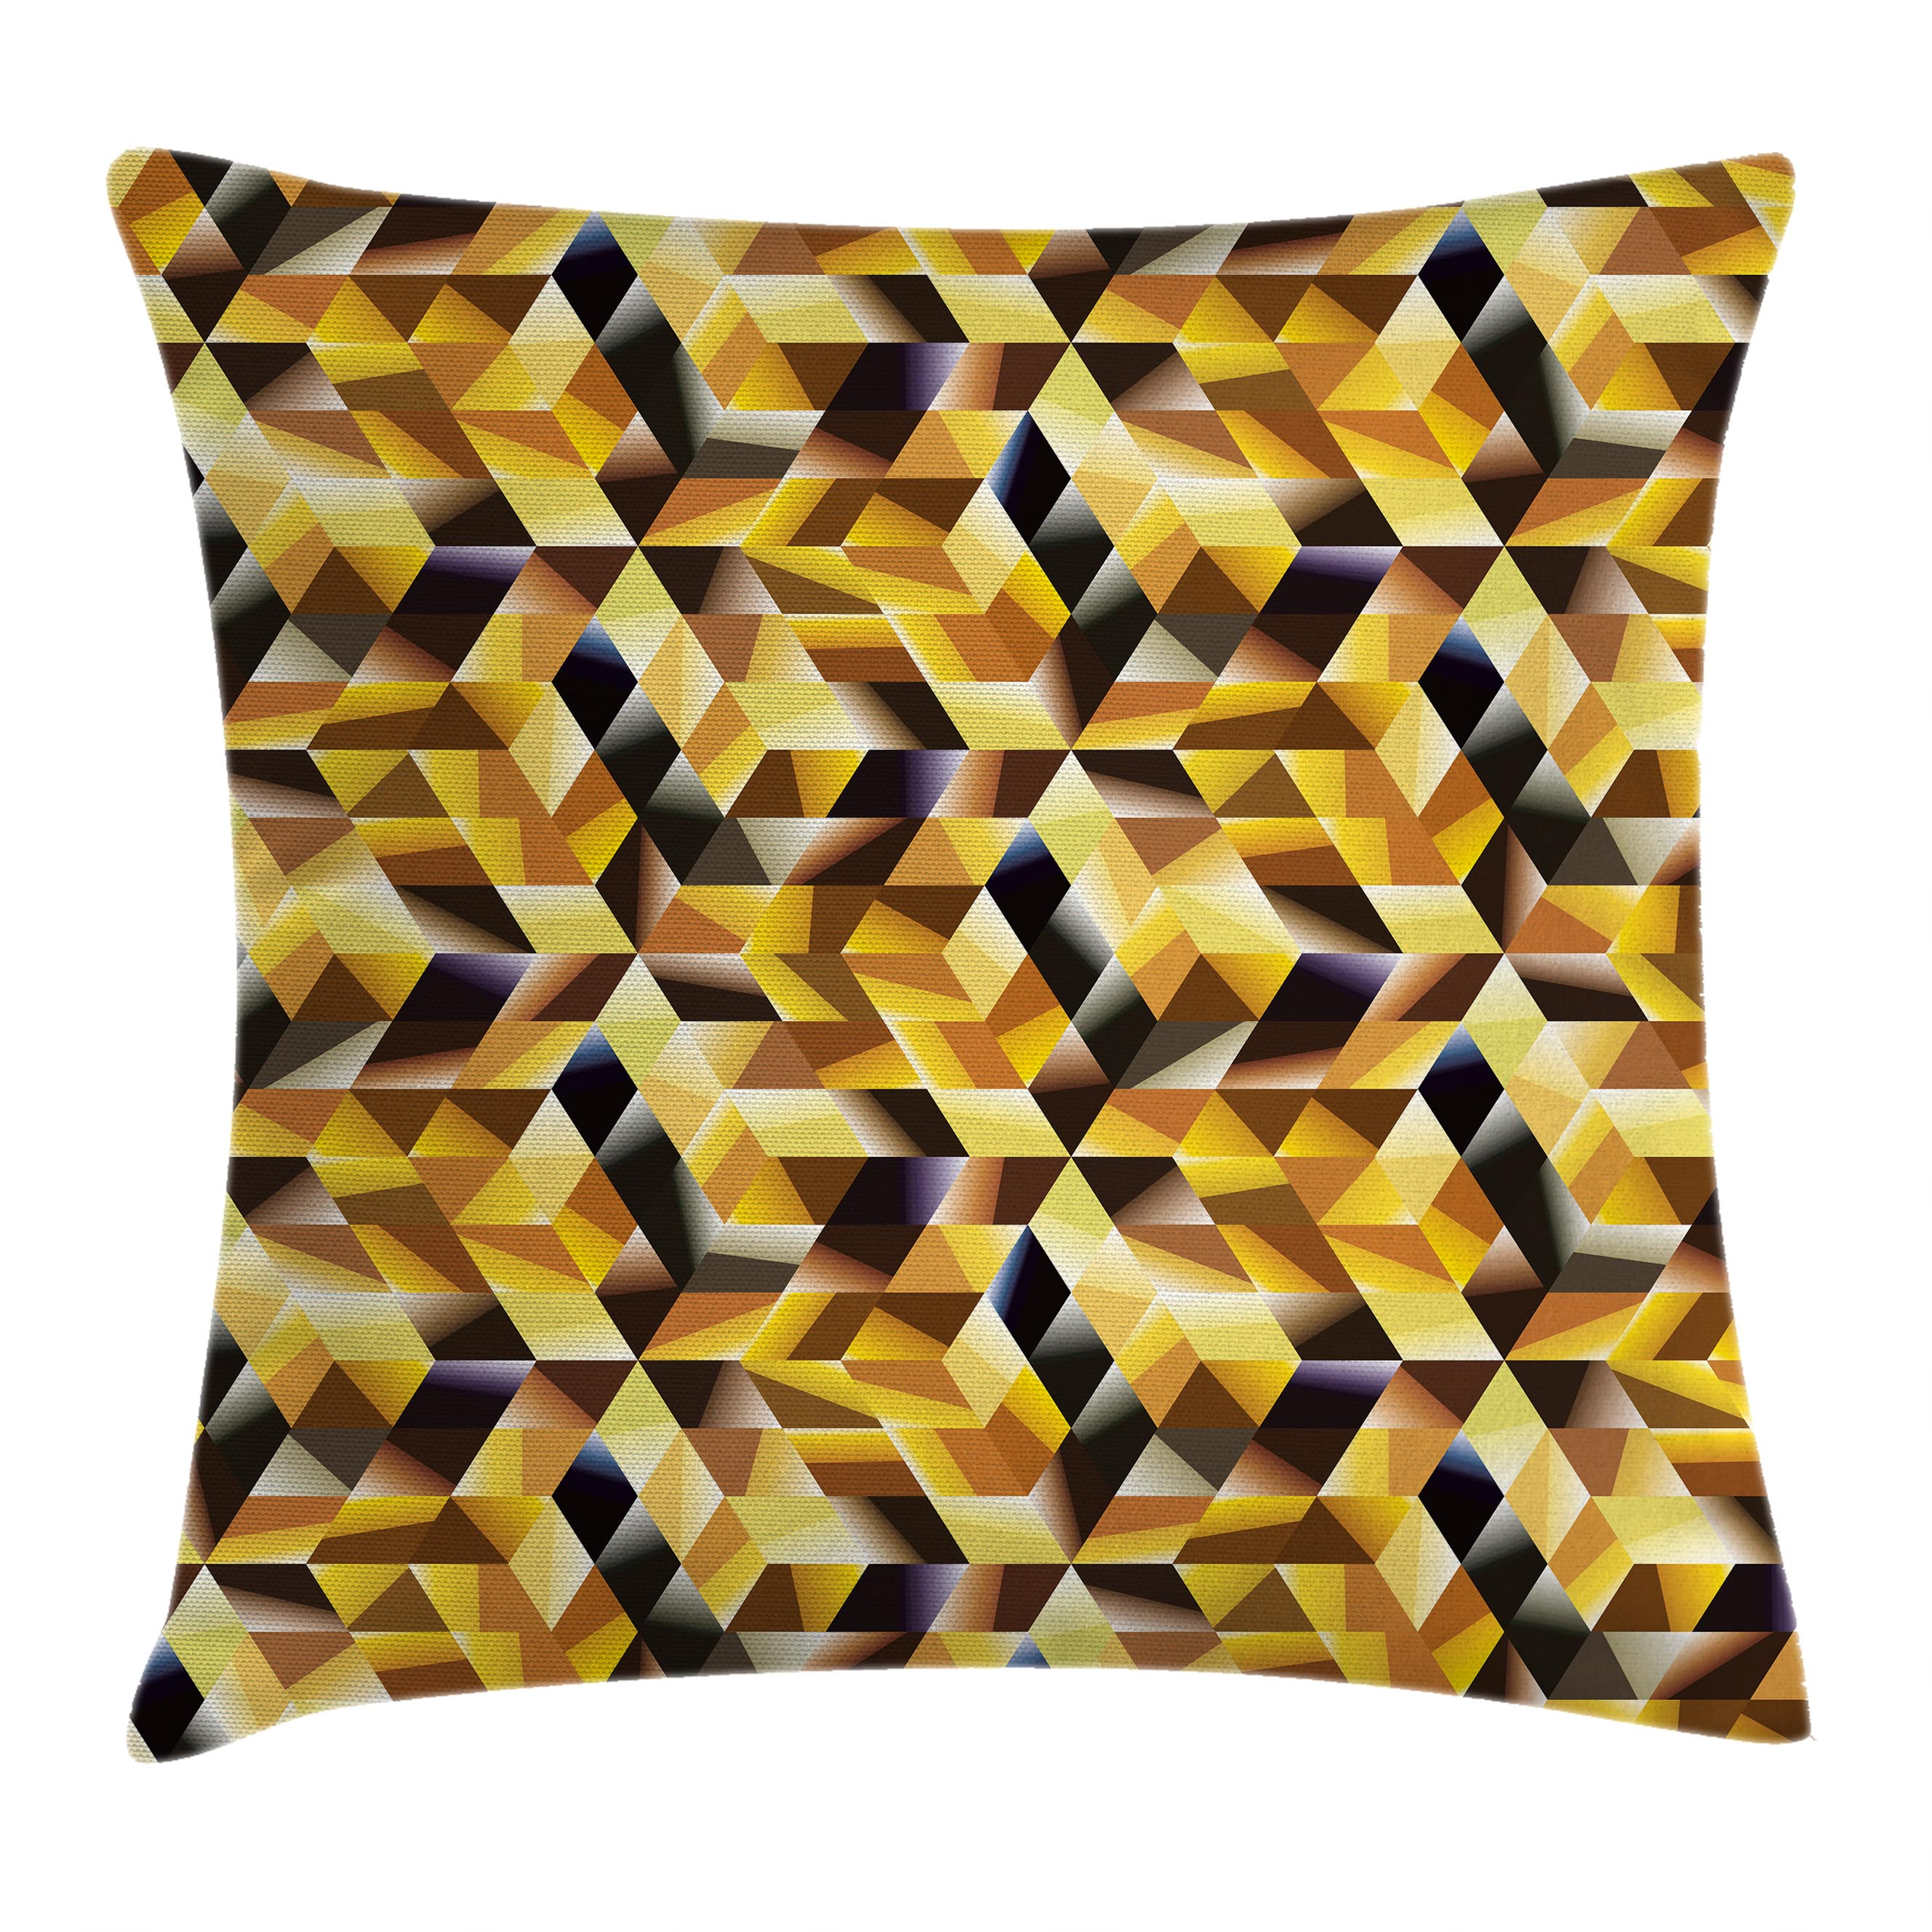 Gold Throw Pillow Cushion Cover, Cubes and Blocks Form Abstract Art Geometric Digital Graphic Art Pattern, Decorative Square Accent Pillow Case, 16 X 16 Inches, Gold Copper and Black, by Ambesonne